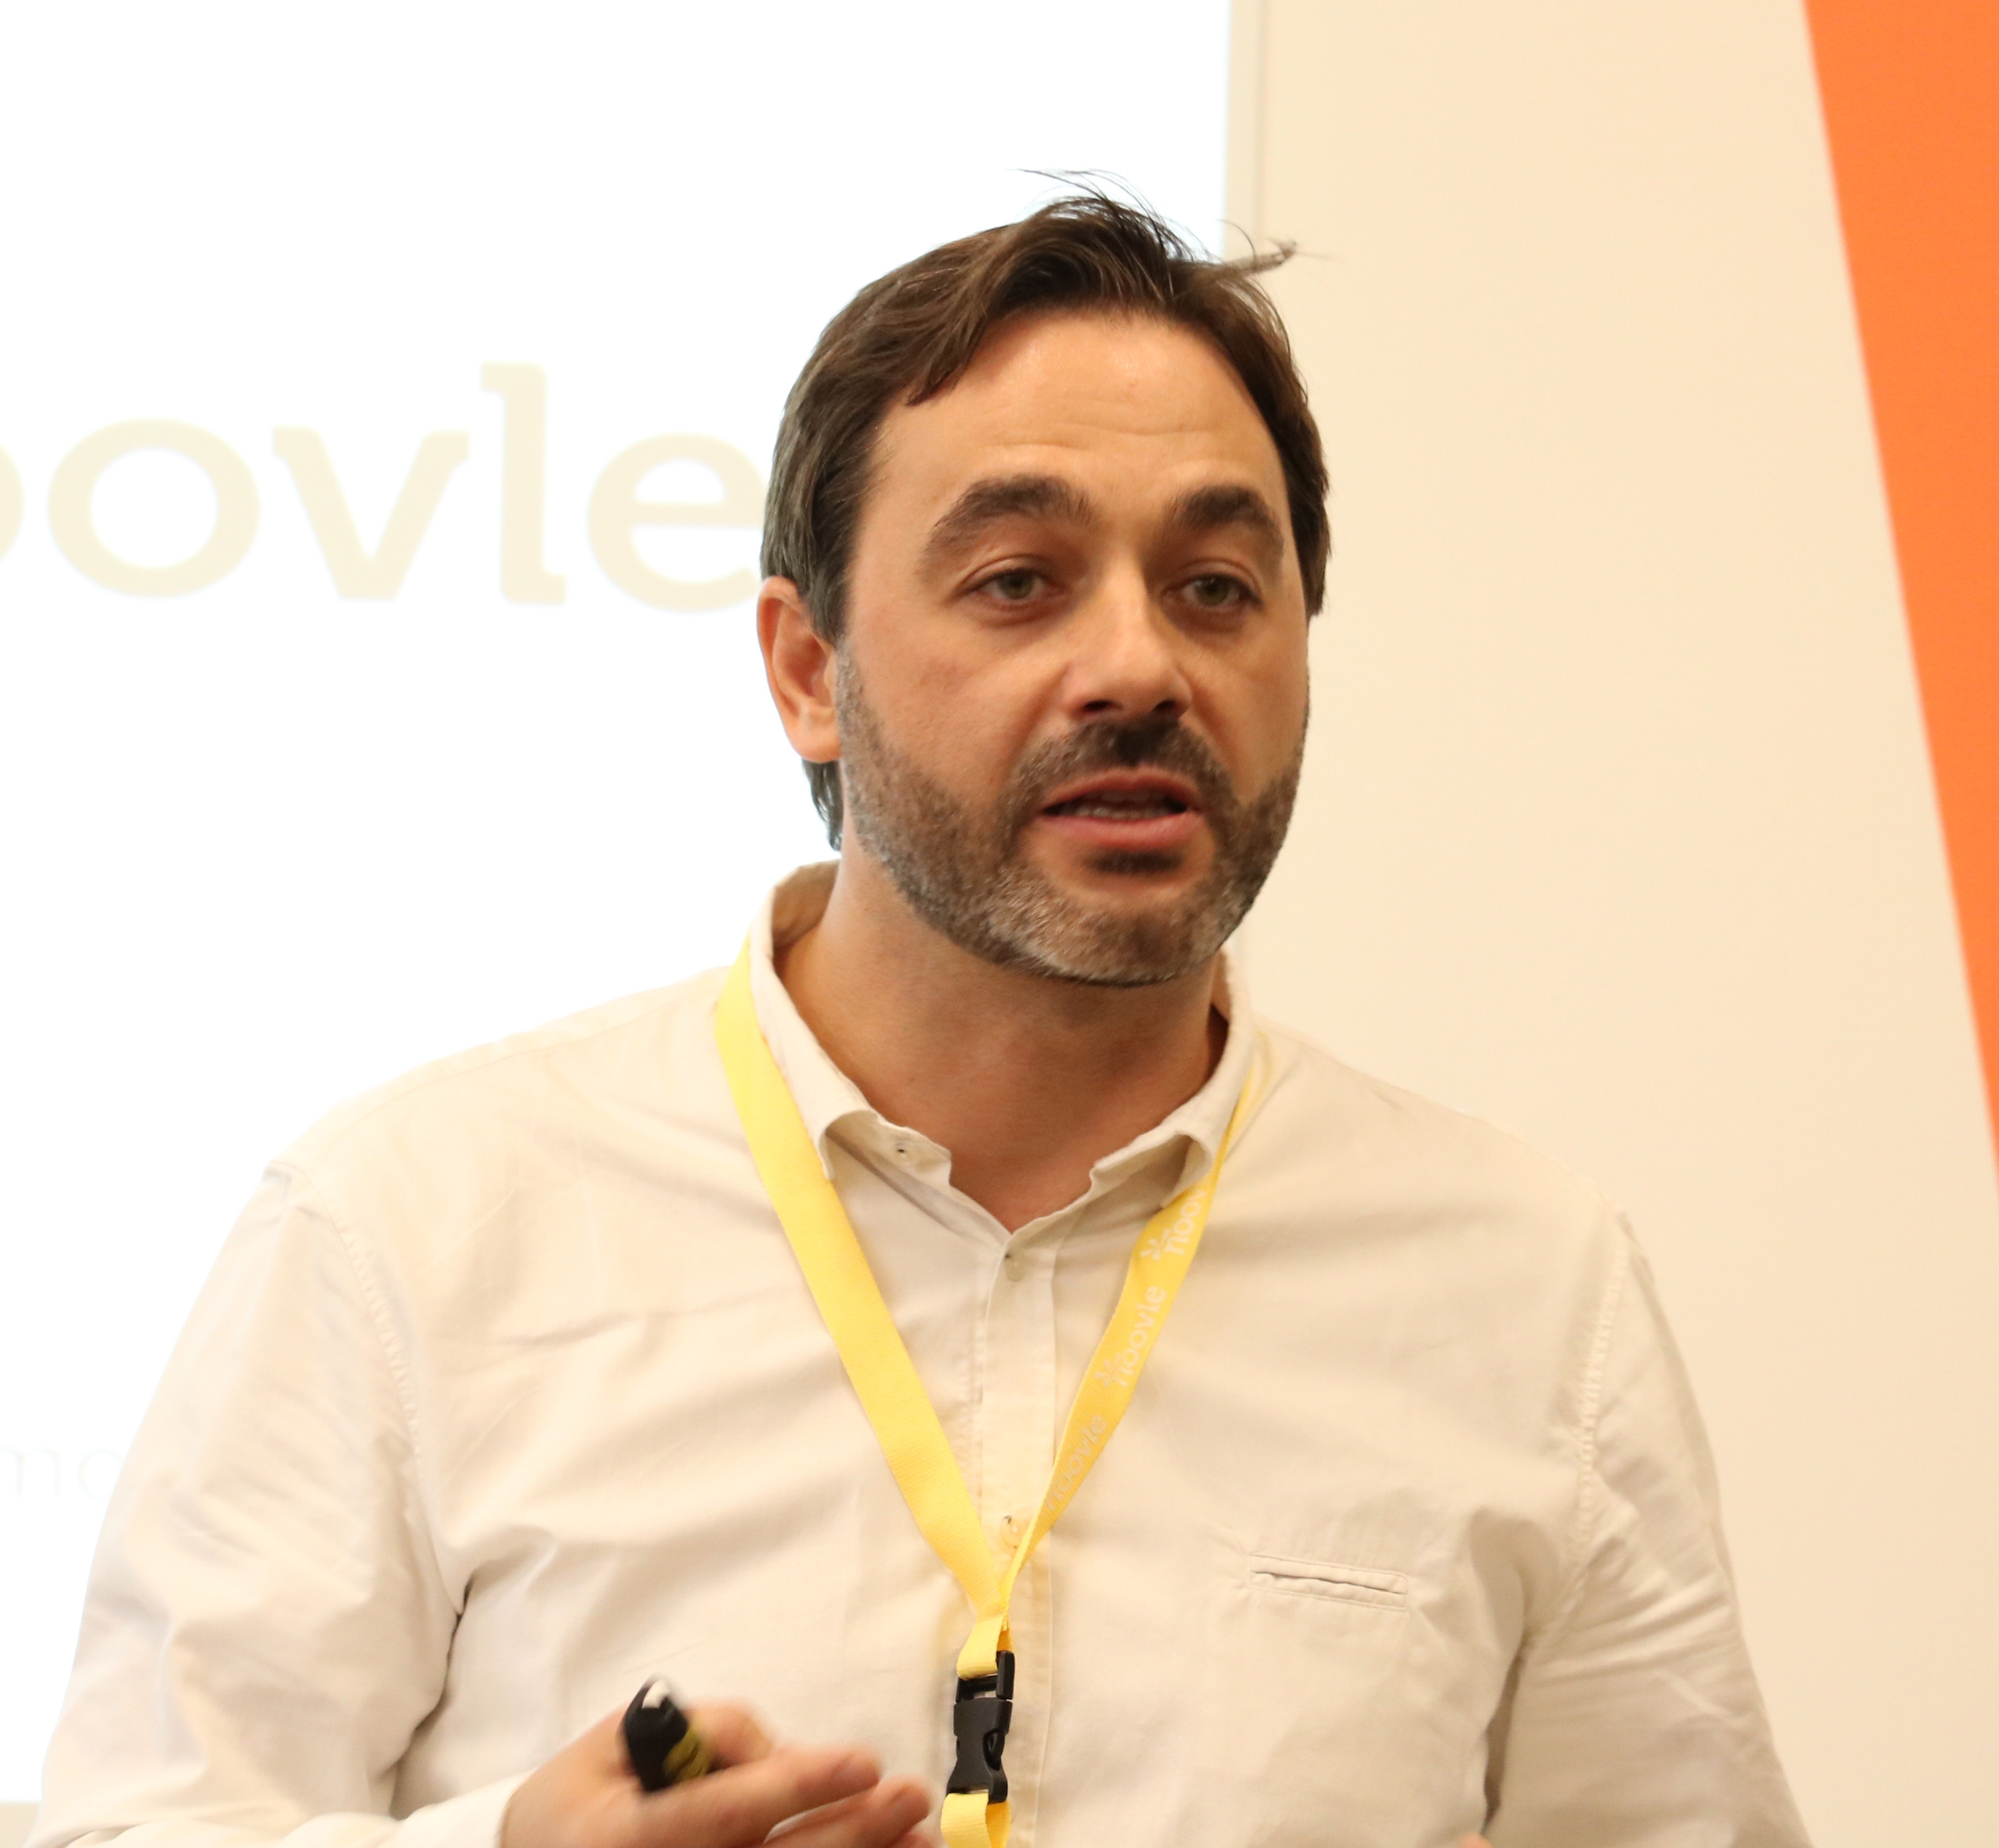 Matteo Lampertico, Business Leader & Operation Manager - Google Apps Solutions, Noovle